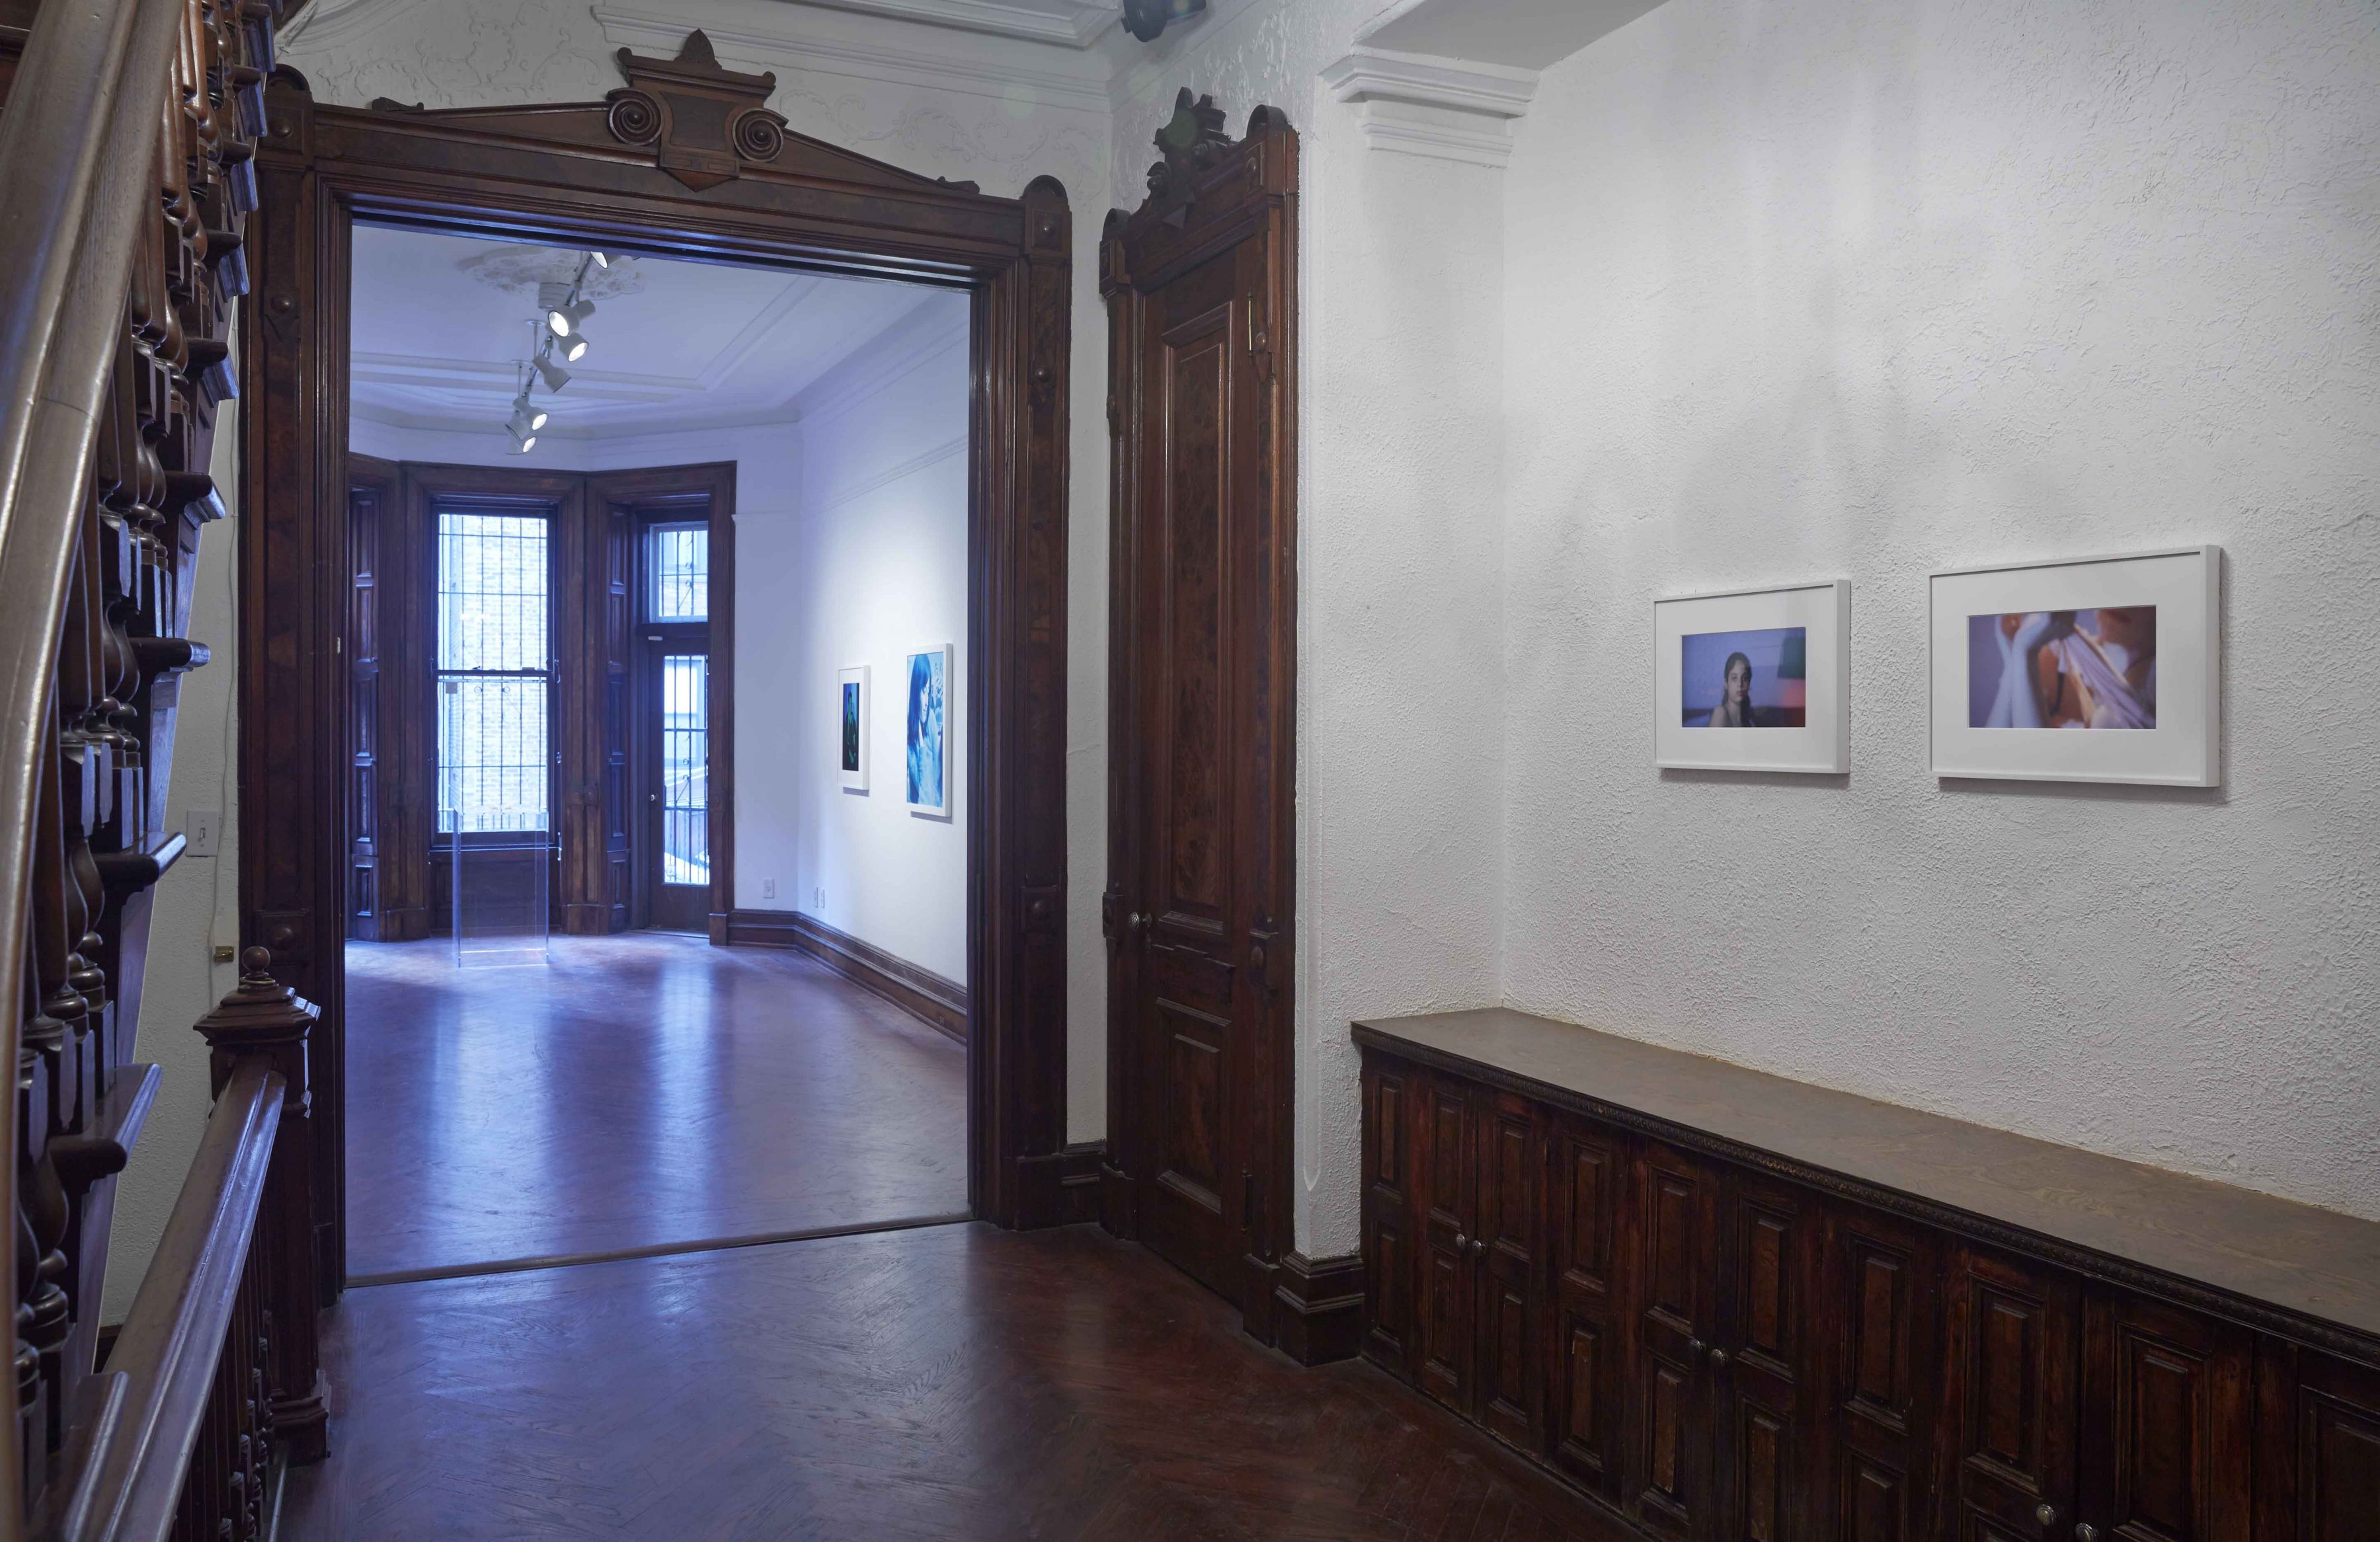 Something Beautiful (Installation View), Marianne Boesky Gallery (Uptown), 2014